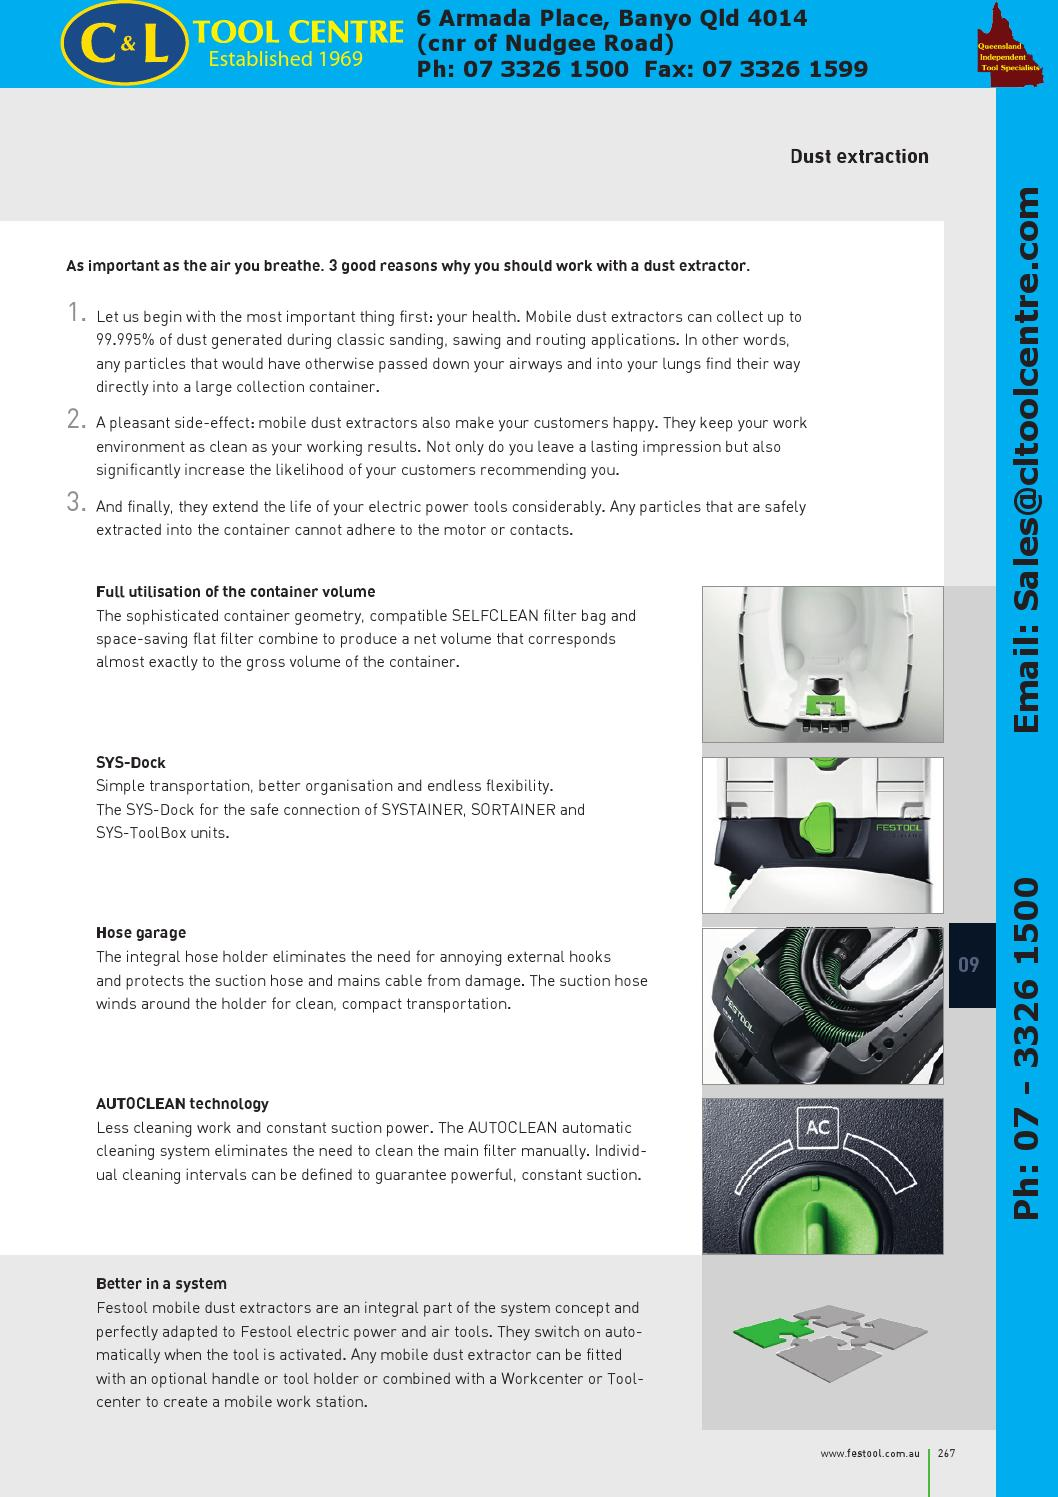 Festool Power Tool Systems & Accessories by C&L Tool Centre